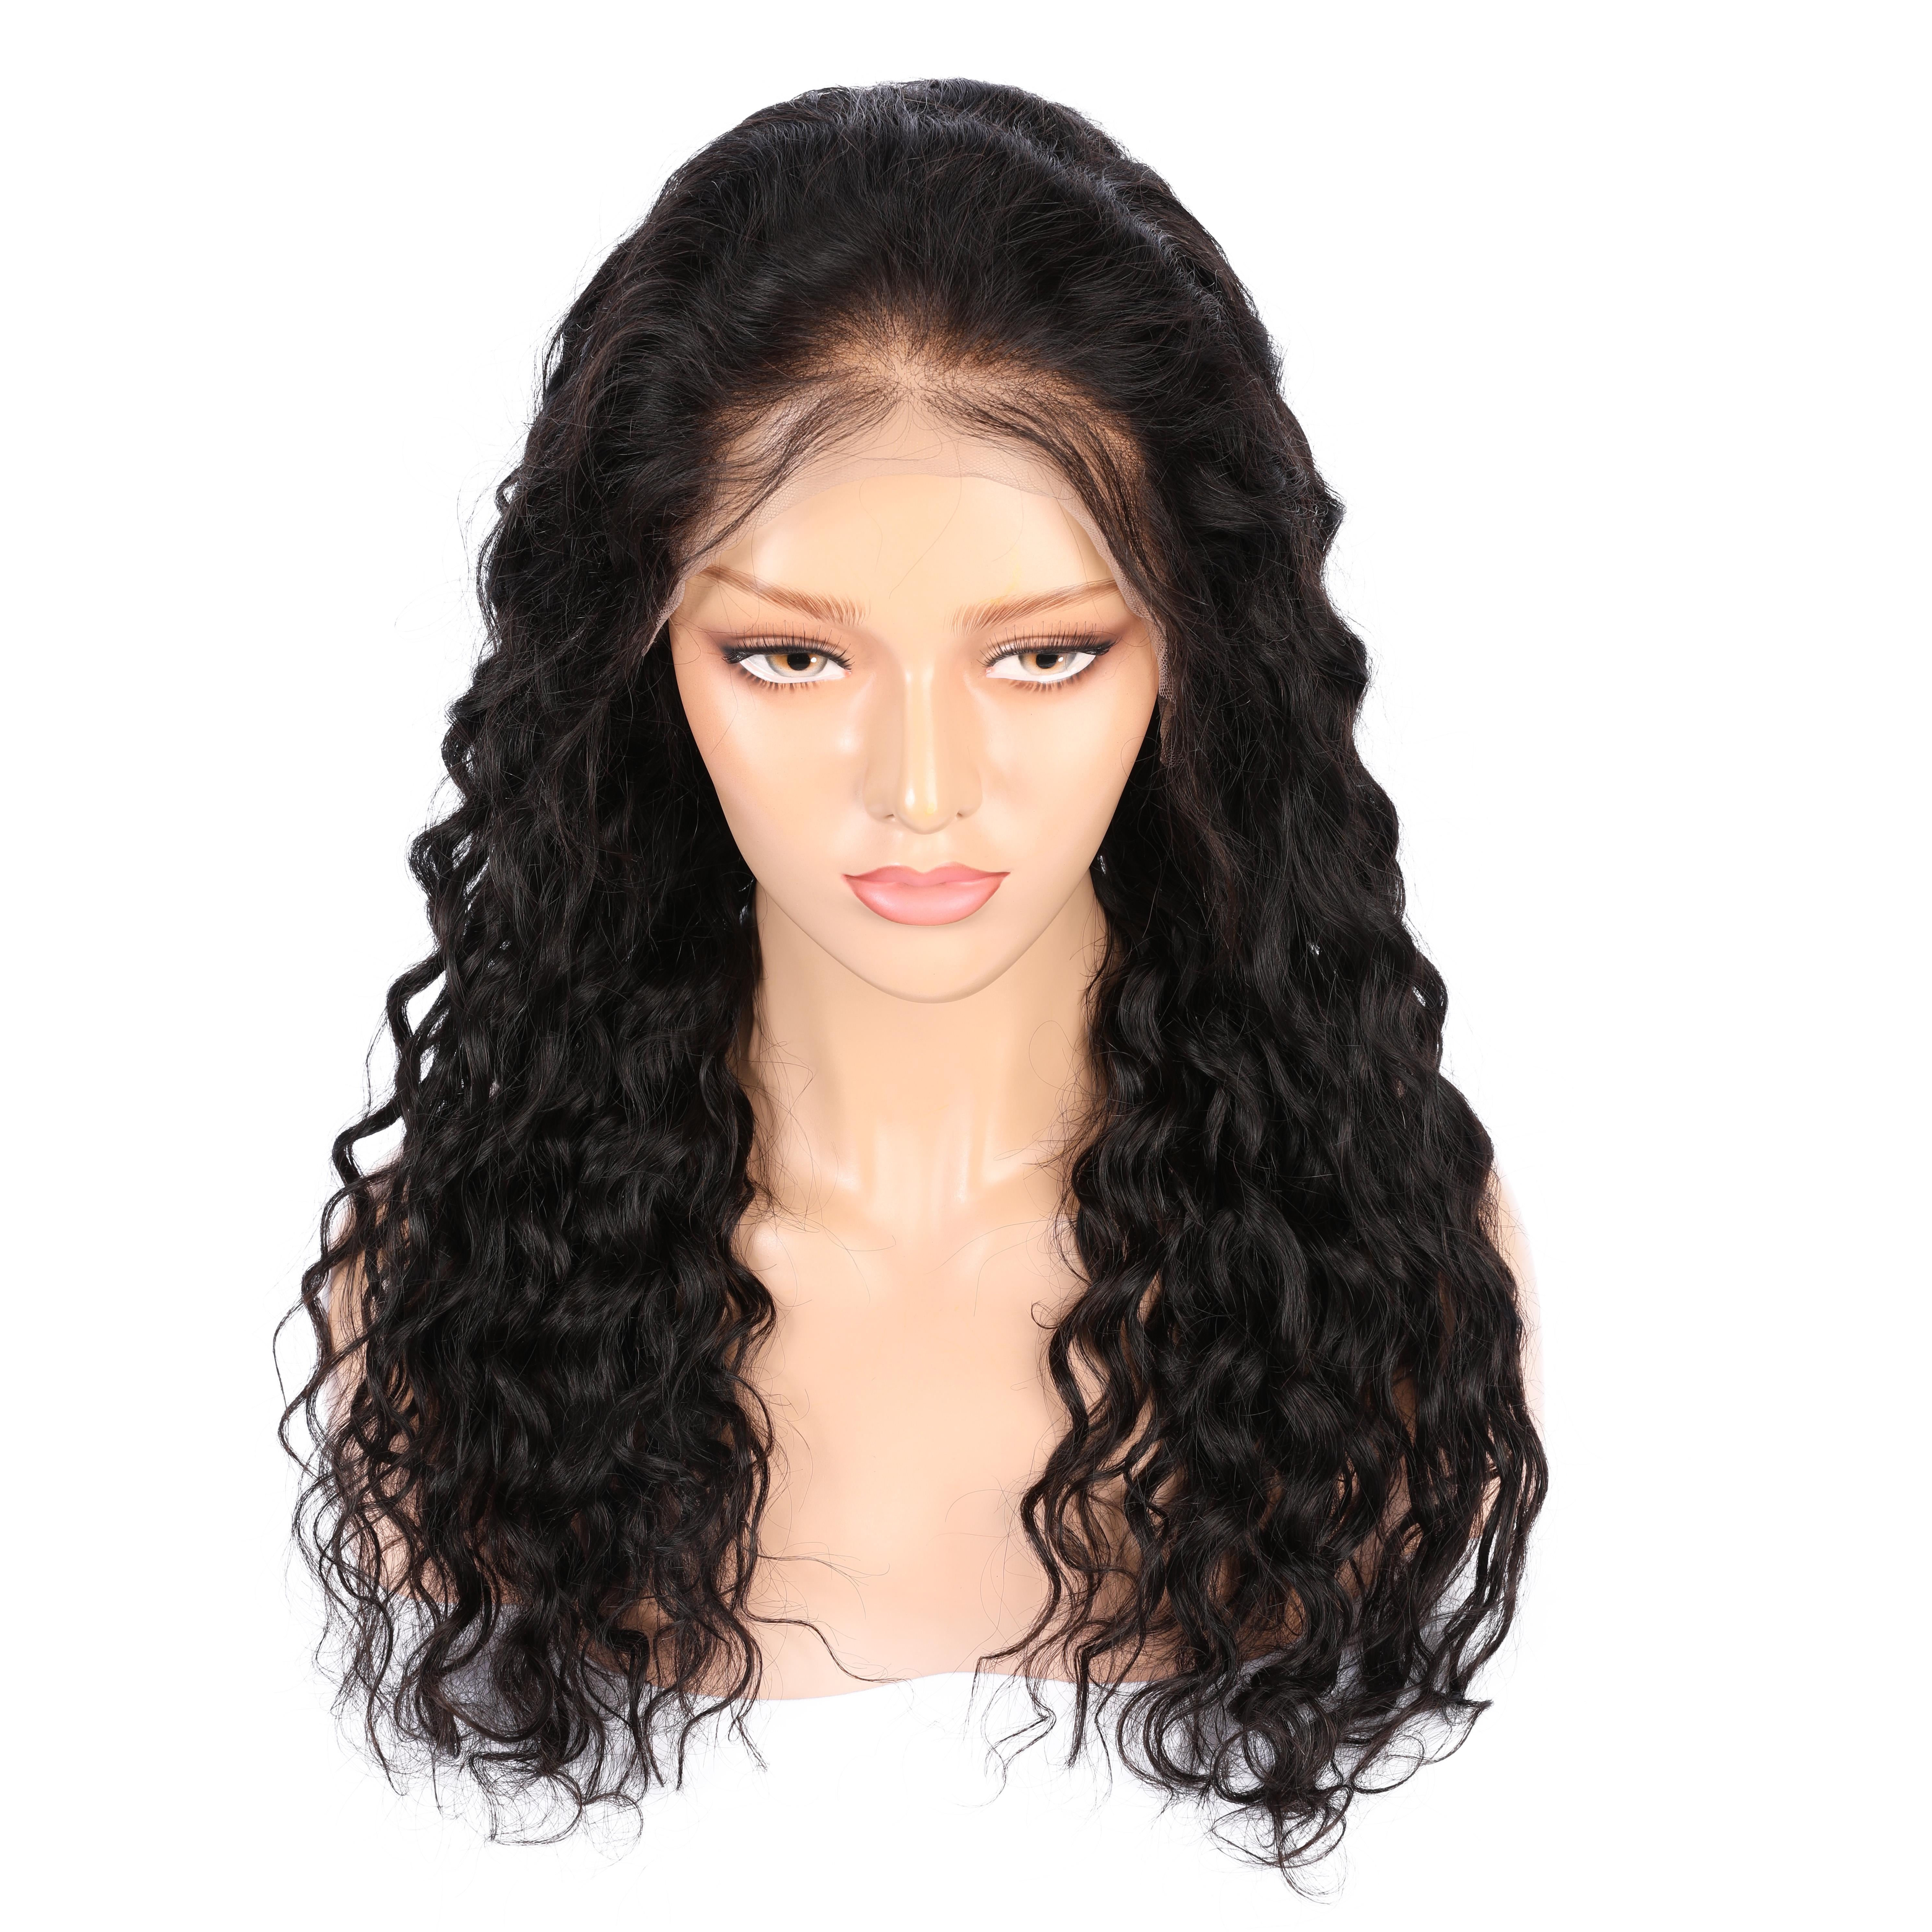 AiS Human Hair Wigs For Black Women Full Lace Wig & 13*4 Front Lace Wig Water Wave Natural 1B Color Brazilian Remy Hair Wigs With Baby hair